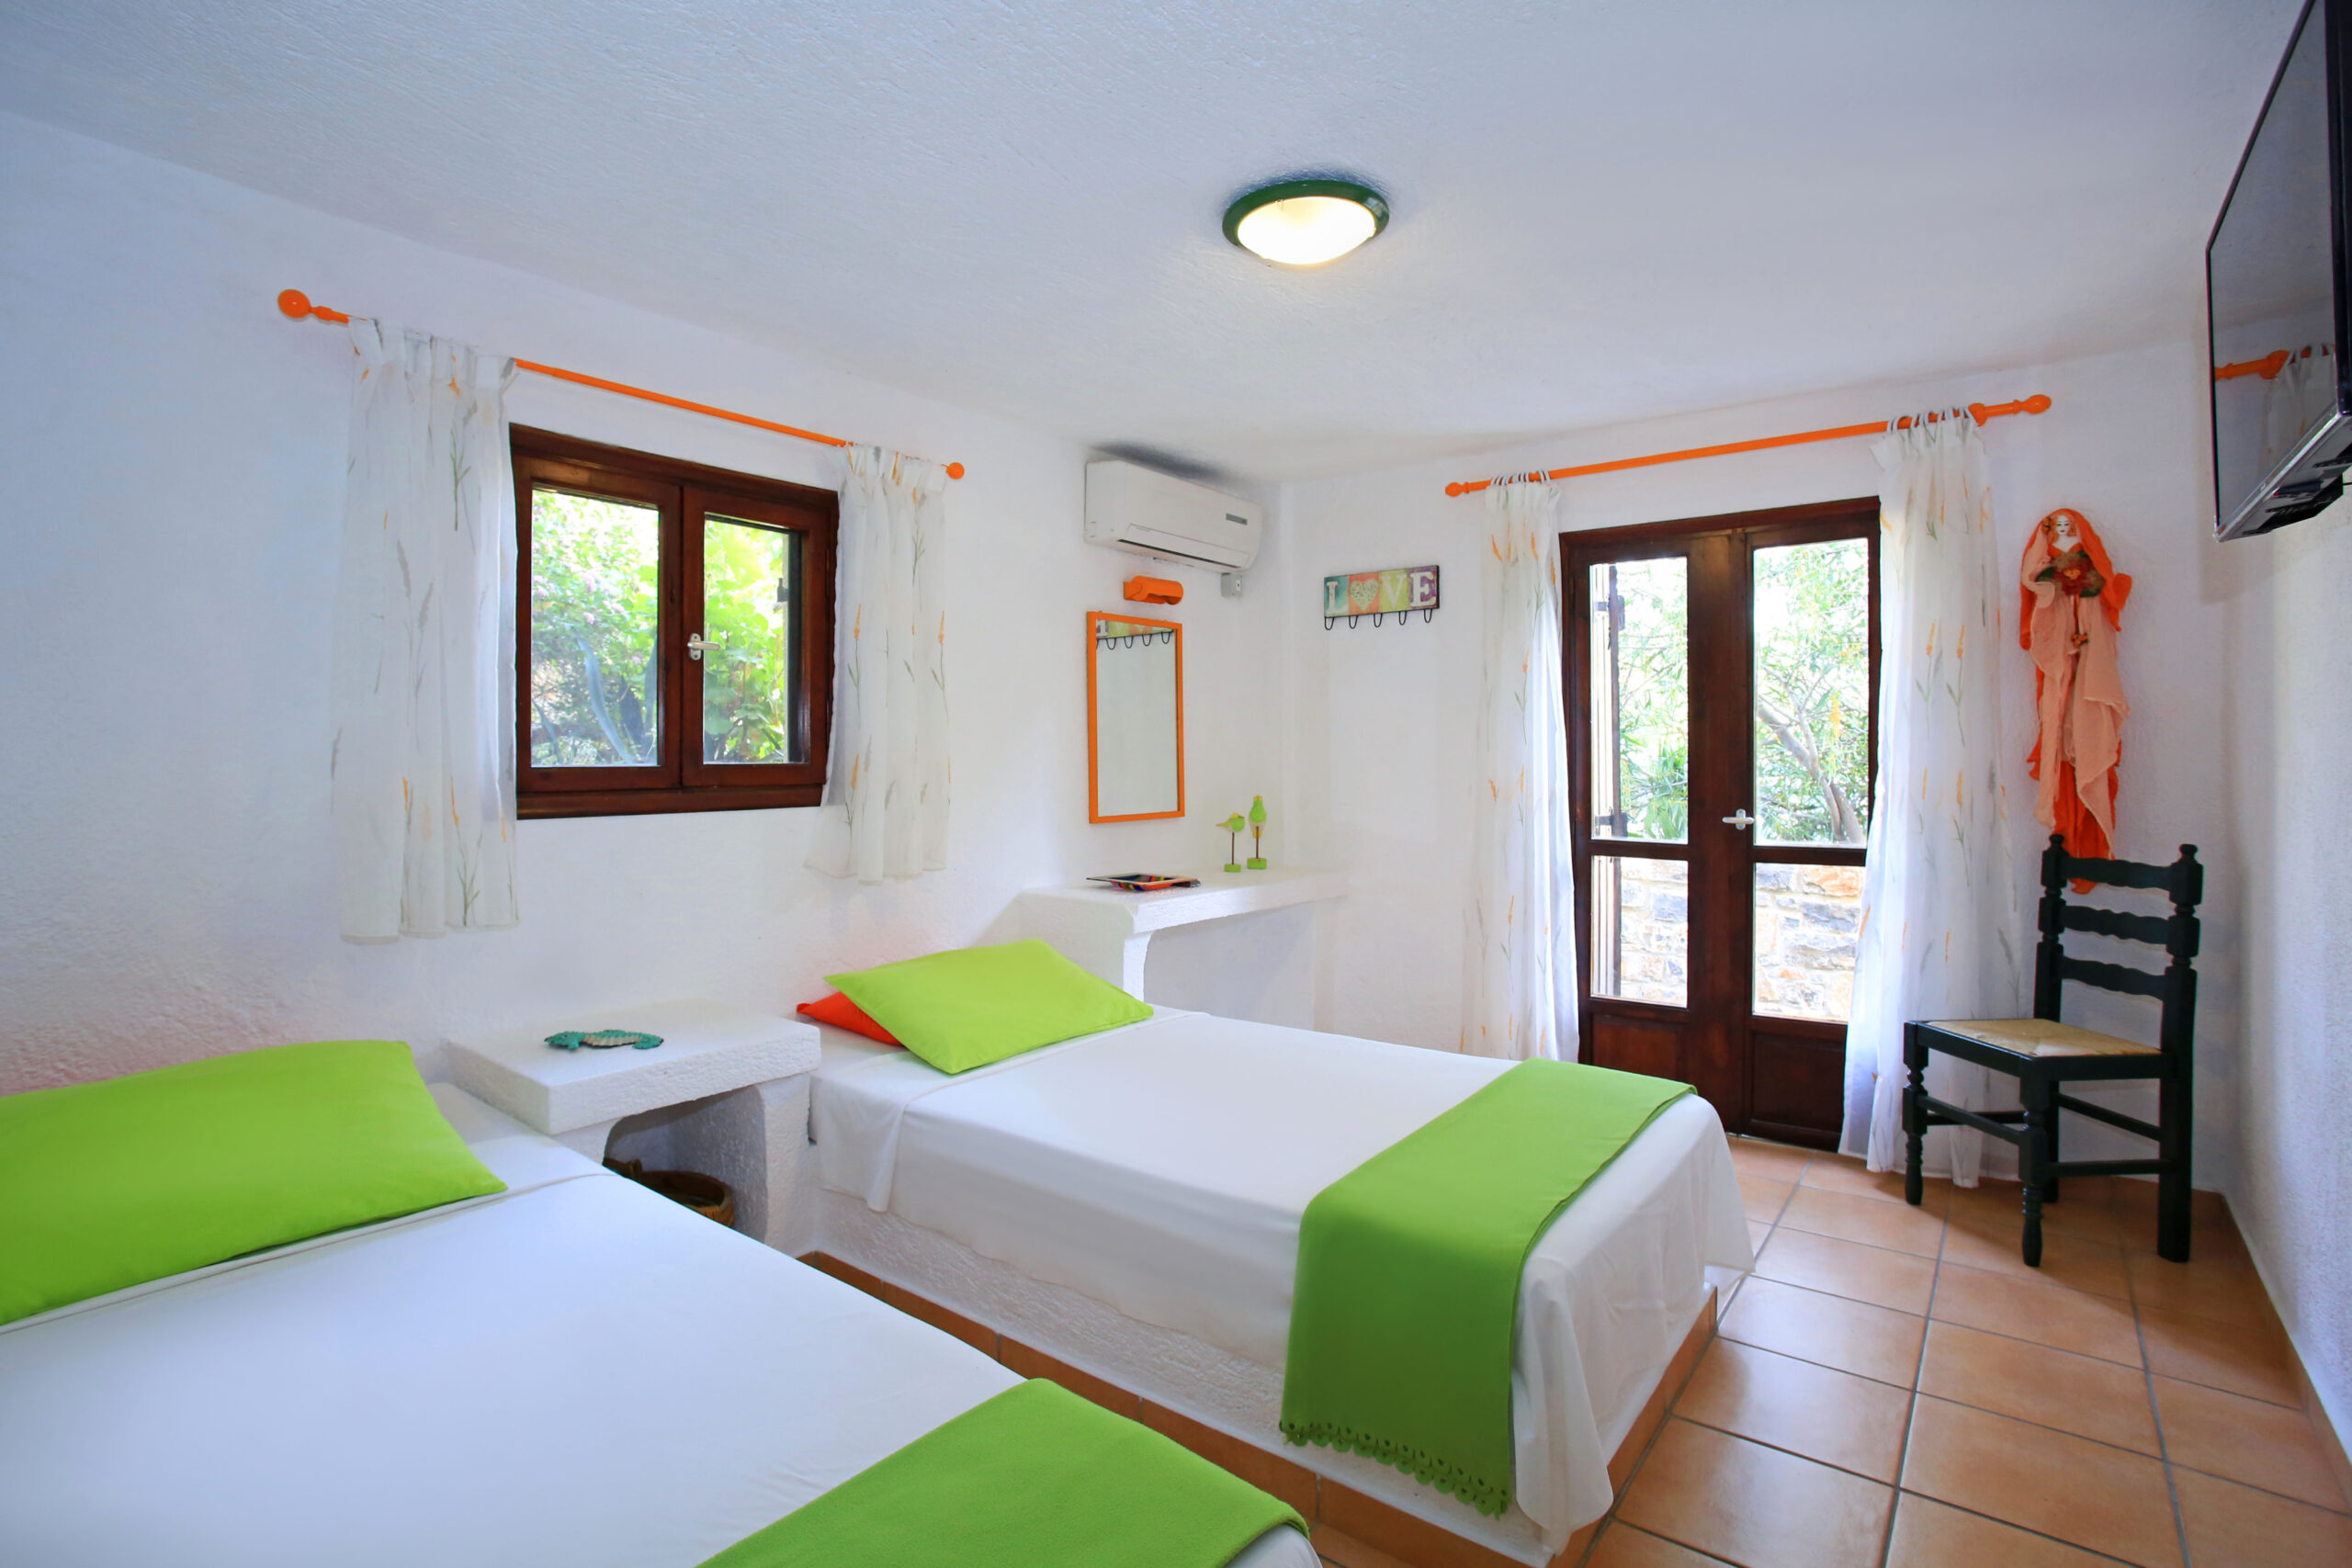 Economy Apartment Ground Floor - Villa Galini Apartments Agios Nikolaos, Crete, Greece 3